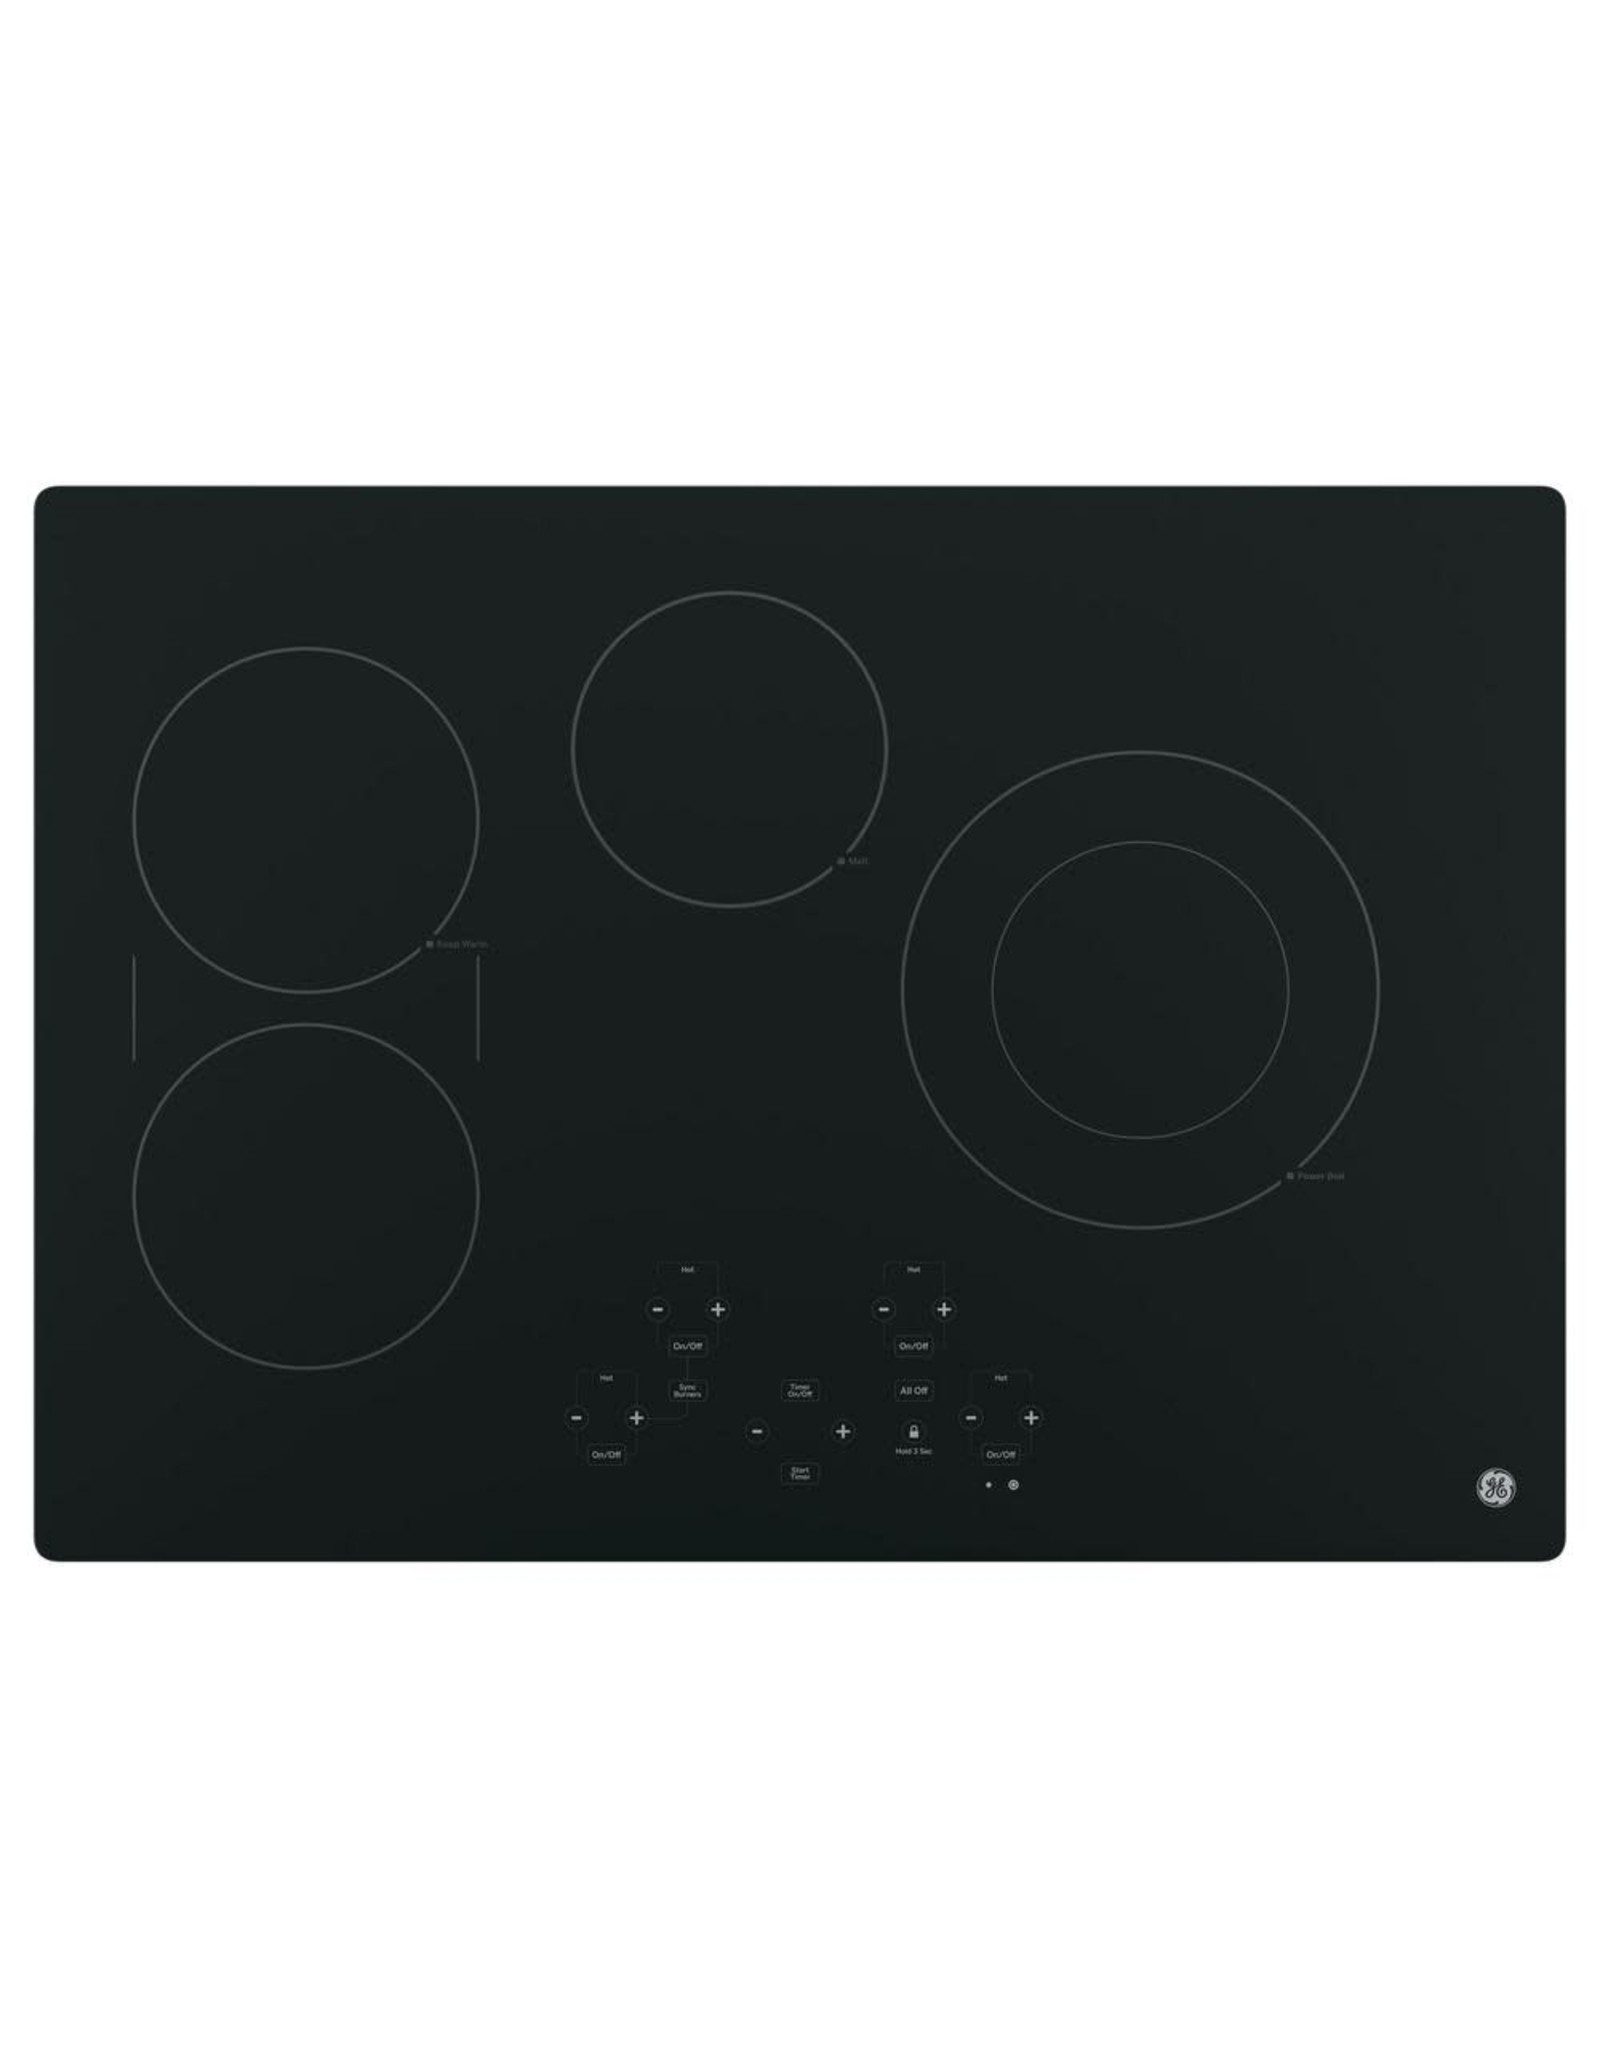 GE jp503dj2bb 30 in. Radiant Electric Cooktop in Black with 4 Elements including Power Boil Element